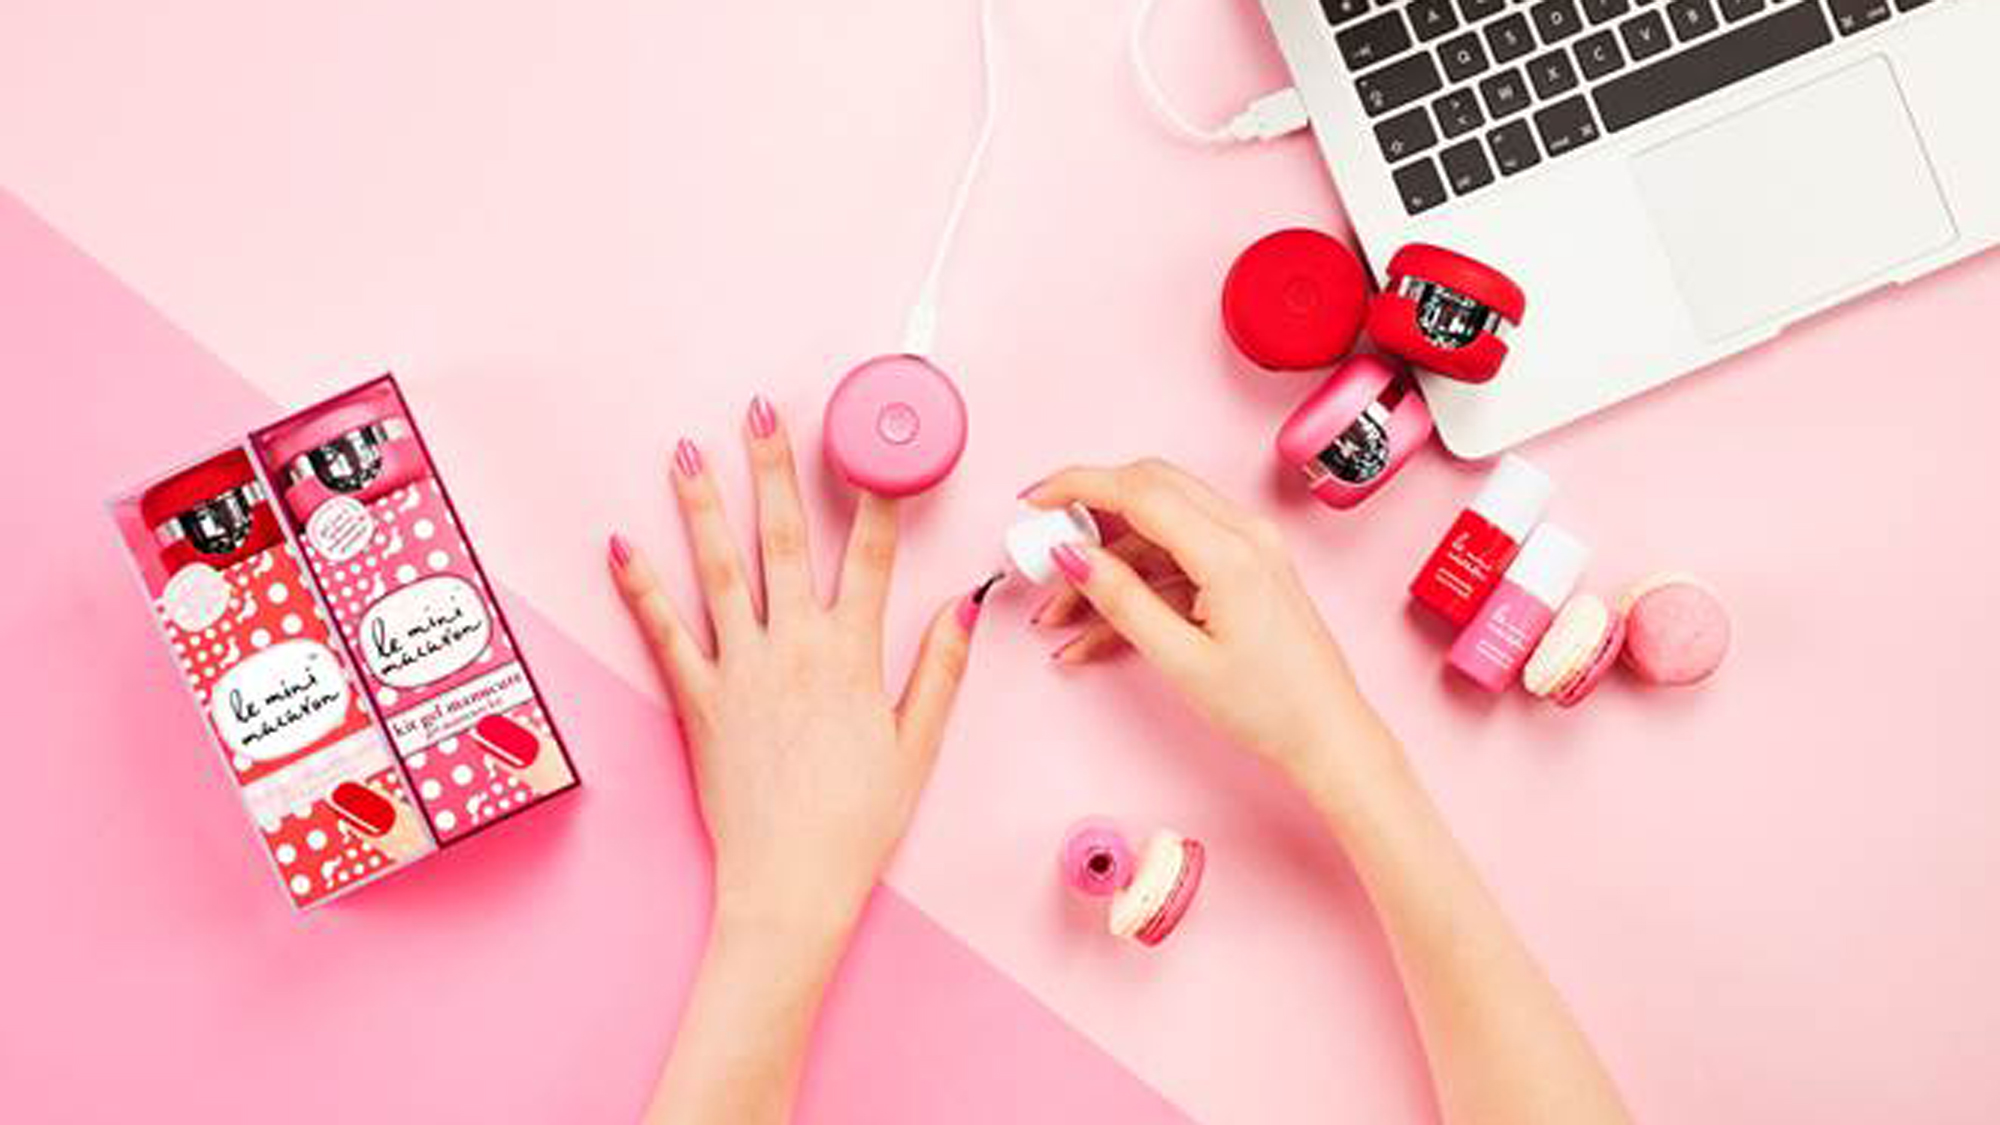 Le Mini Macaron is here to give you a flawless (and affordable) at-home gel manicure